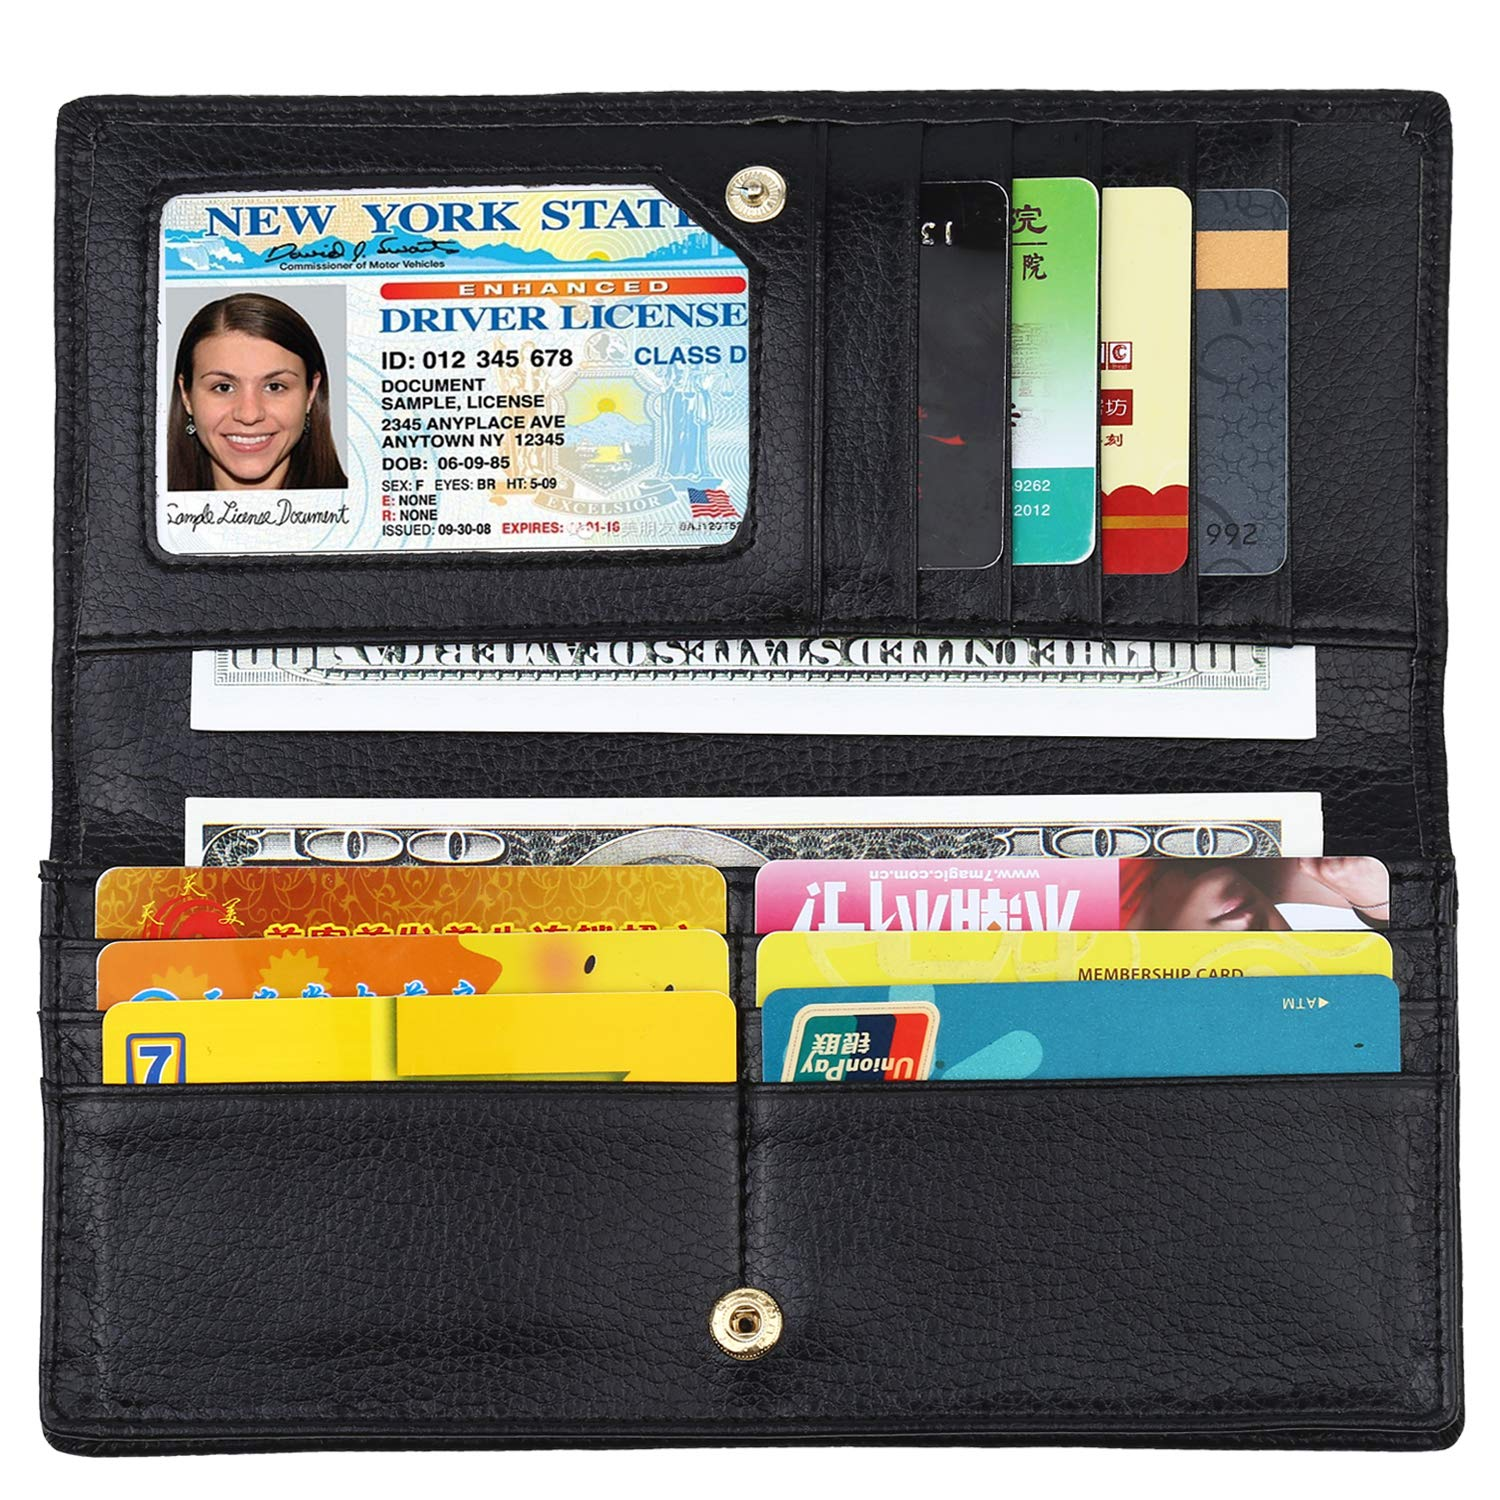 Lavemi RFID Blocking Ultra Slim Real Leather Credit Card Holder Clutch Wallets for Women(Black1) by Lavemi